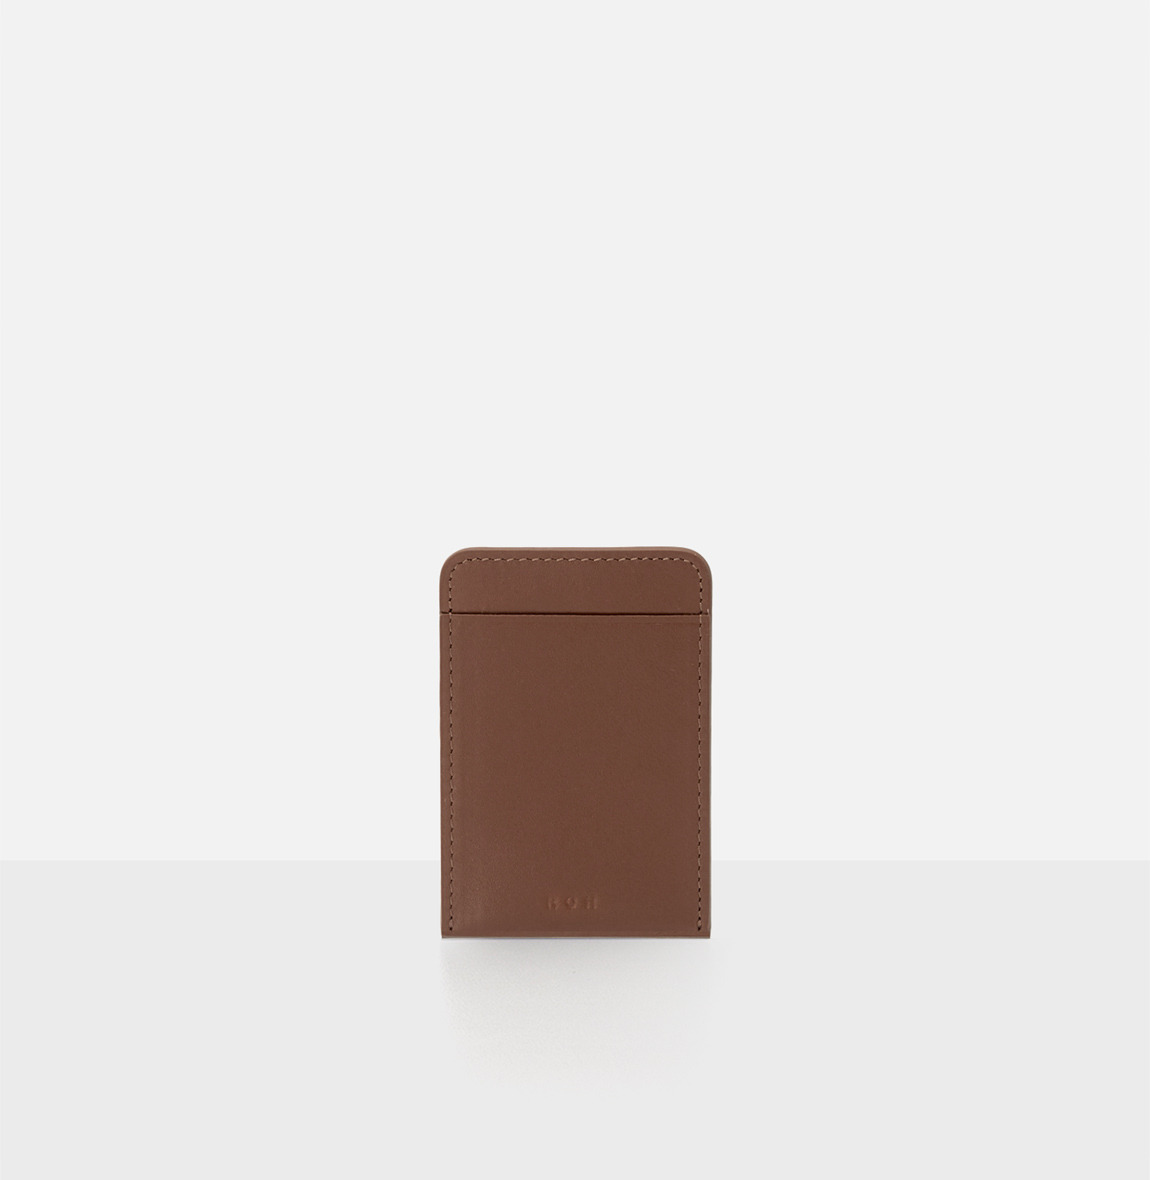 Basic card  Holder Smoky Tan